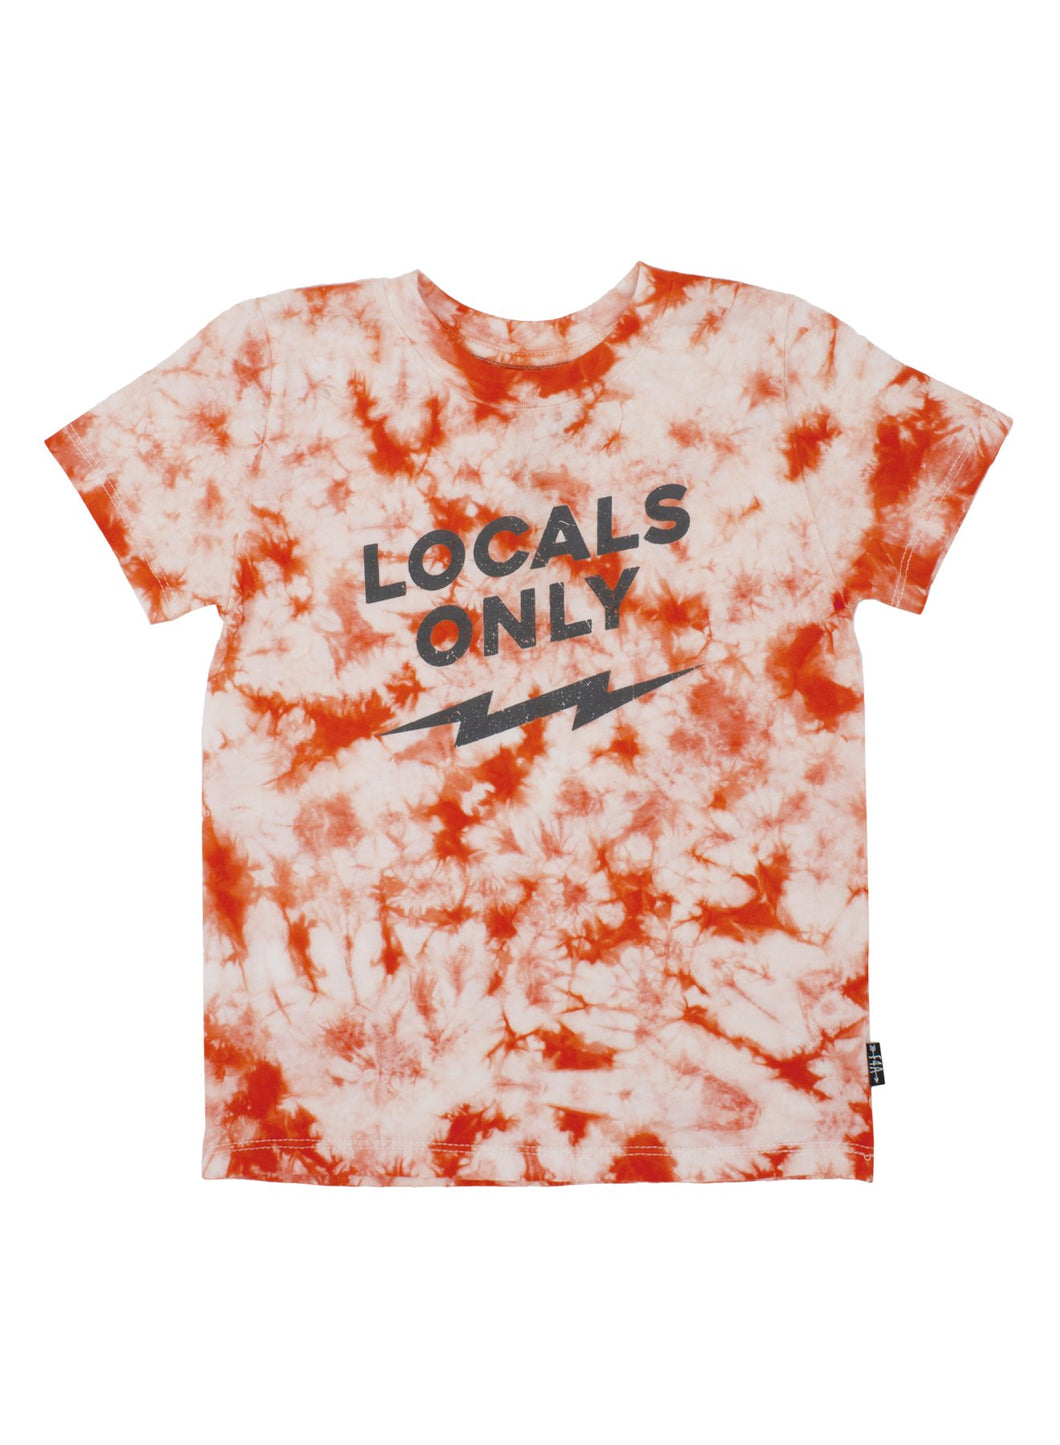 Locals Only Far Out Tee